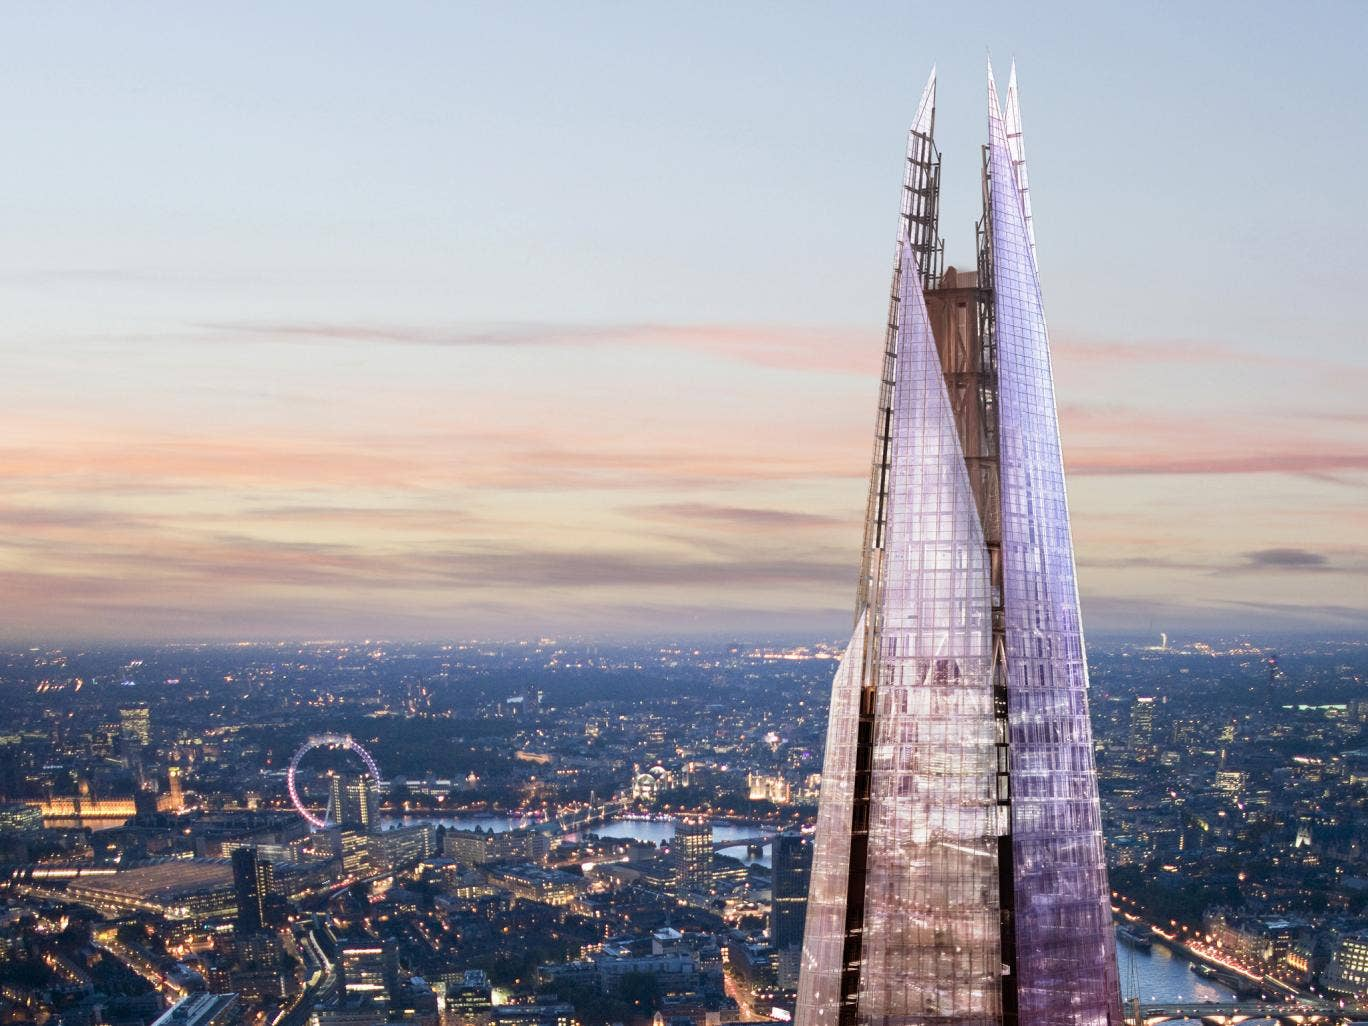 The pinnacle of The Shard